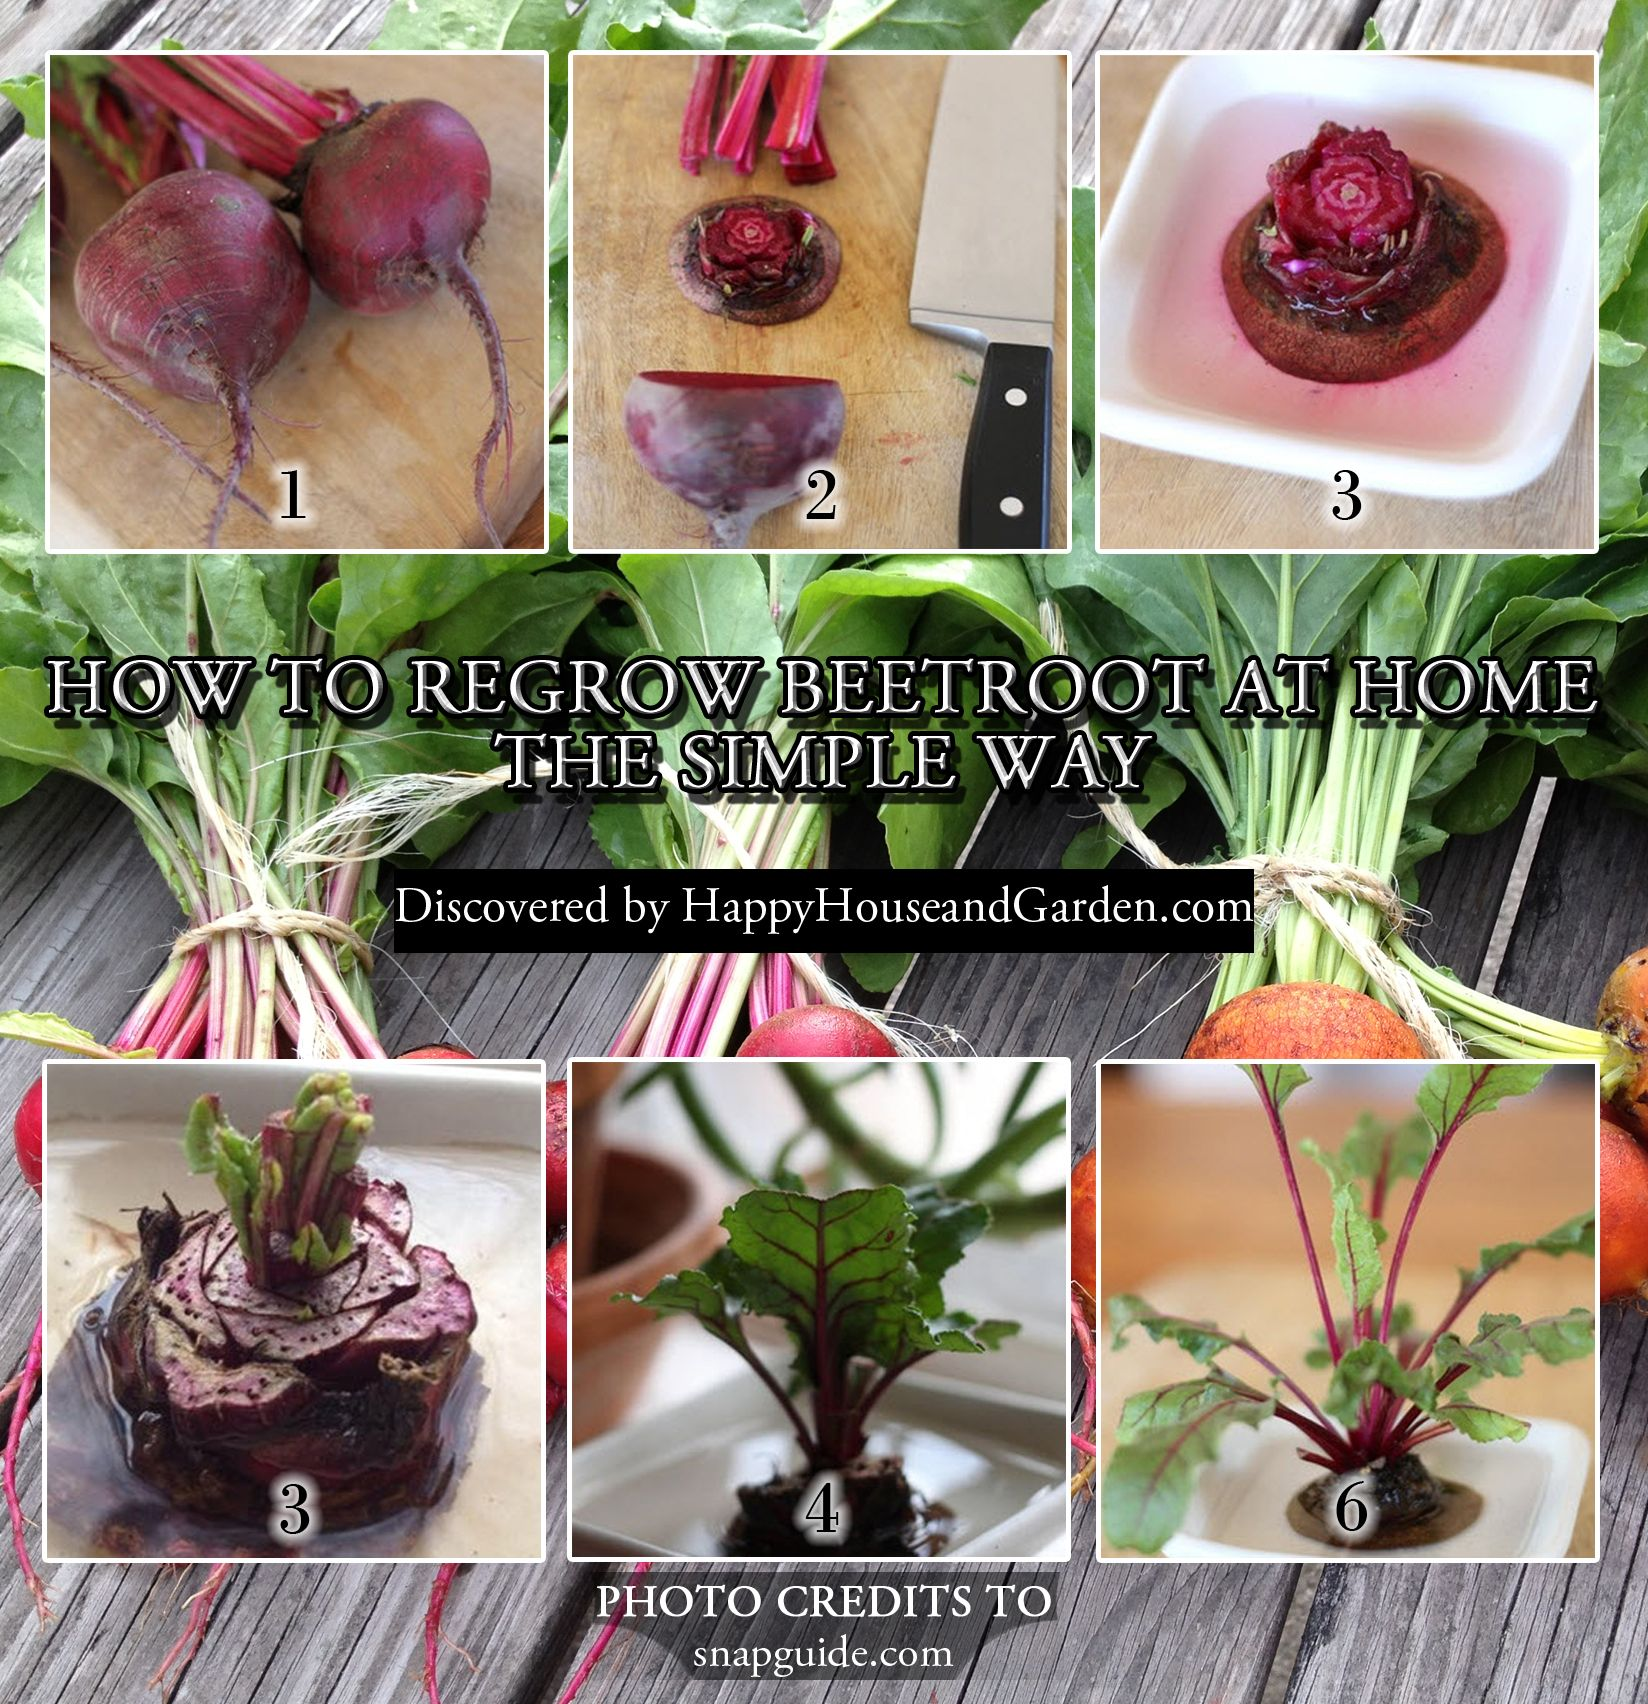 How To Regrow Beetroot At Home The Simple Way Plants In Bottles Beetroot Growing Vegetables